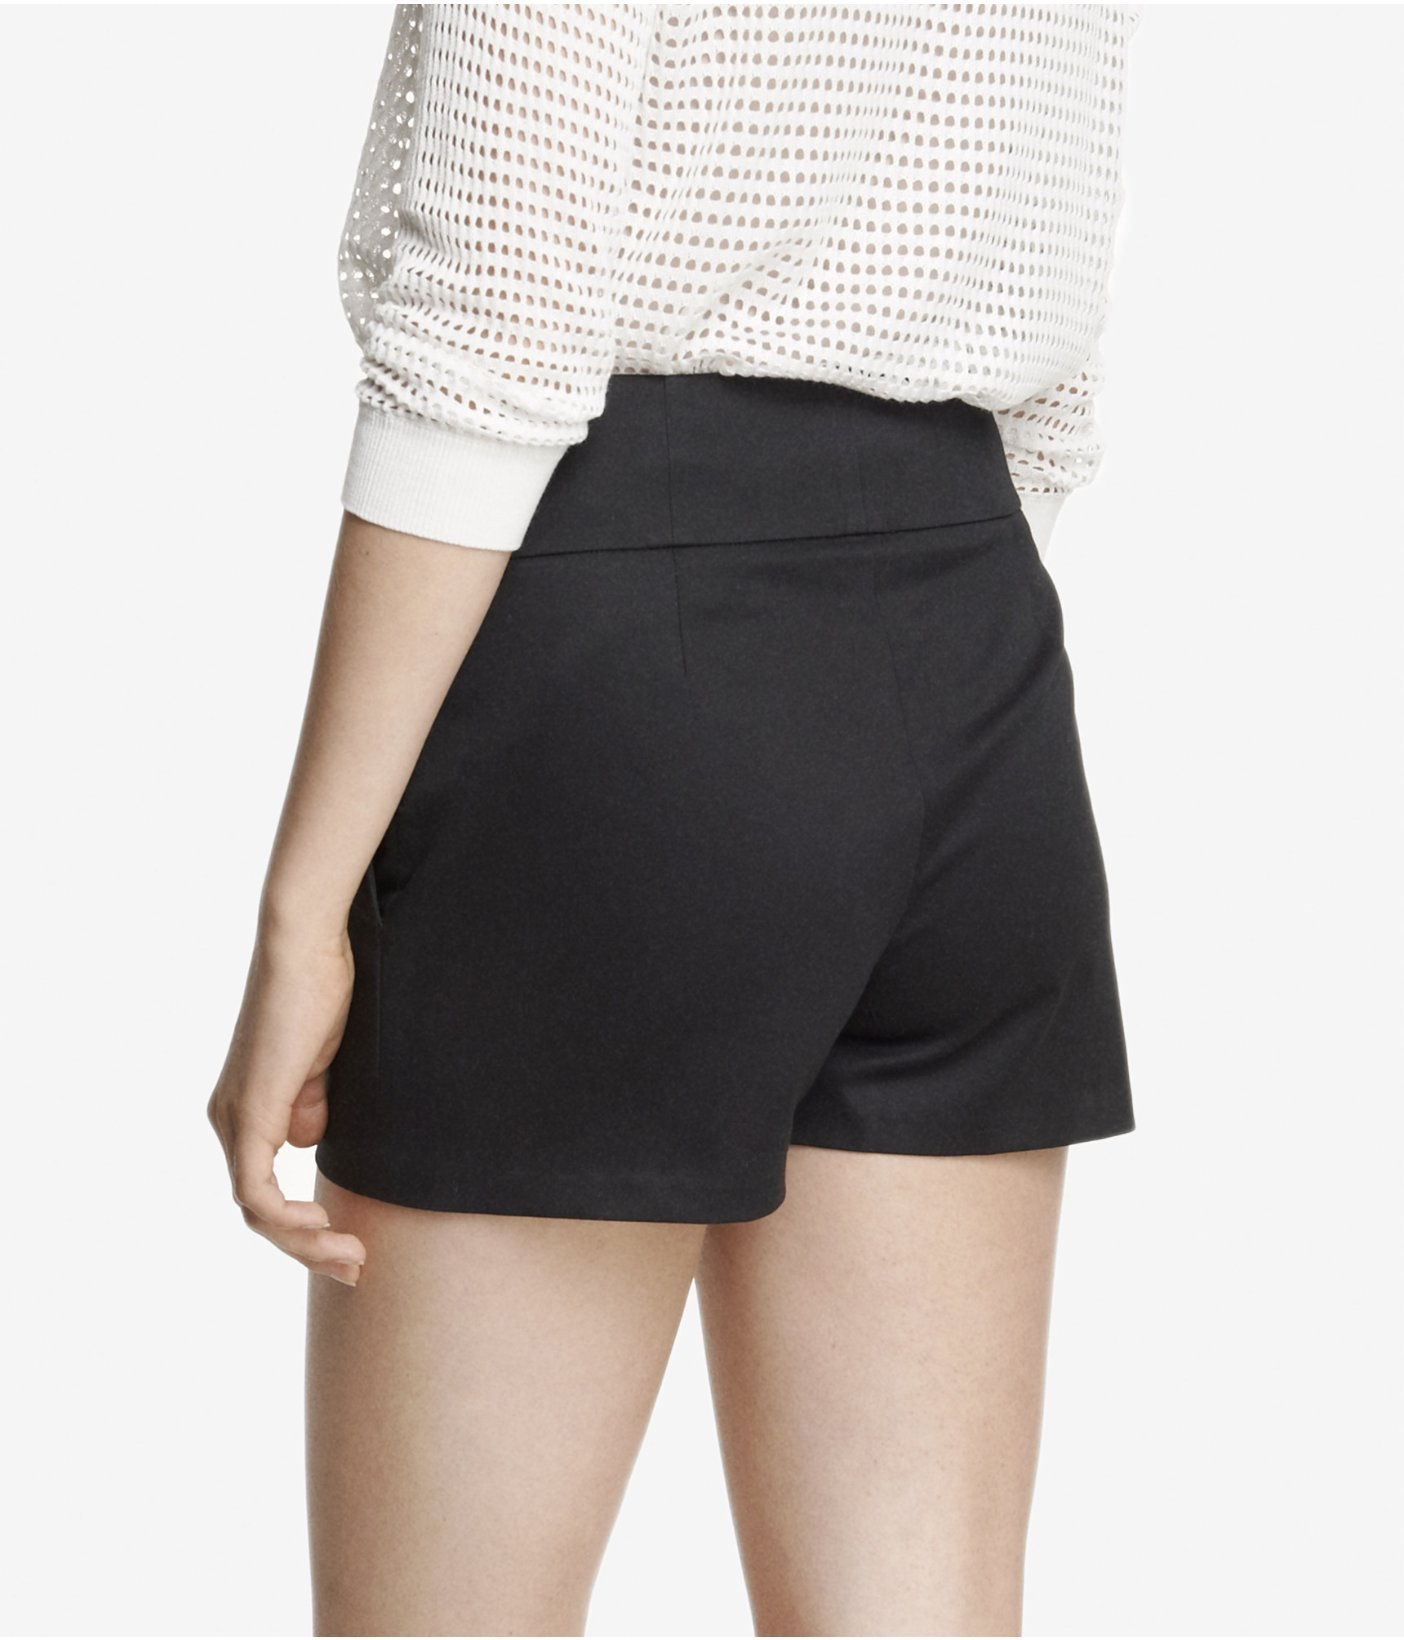 Shop the Latest Collection of Cotton Shorts for Men Online at downloadsolutionspa5tr.gq FREE SHIPPING AVAILABLE!